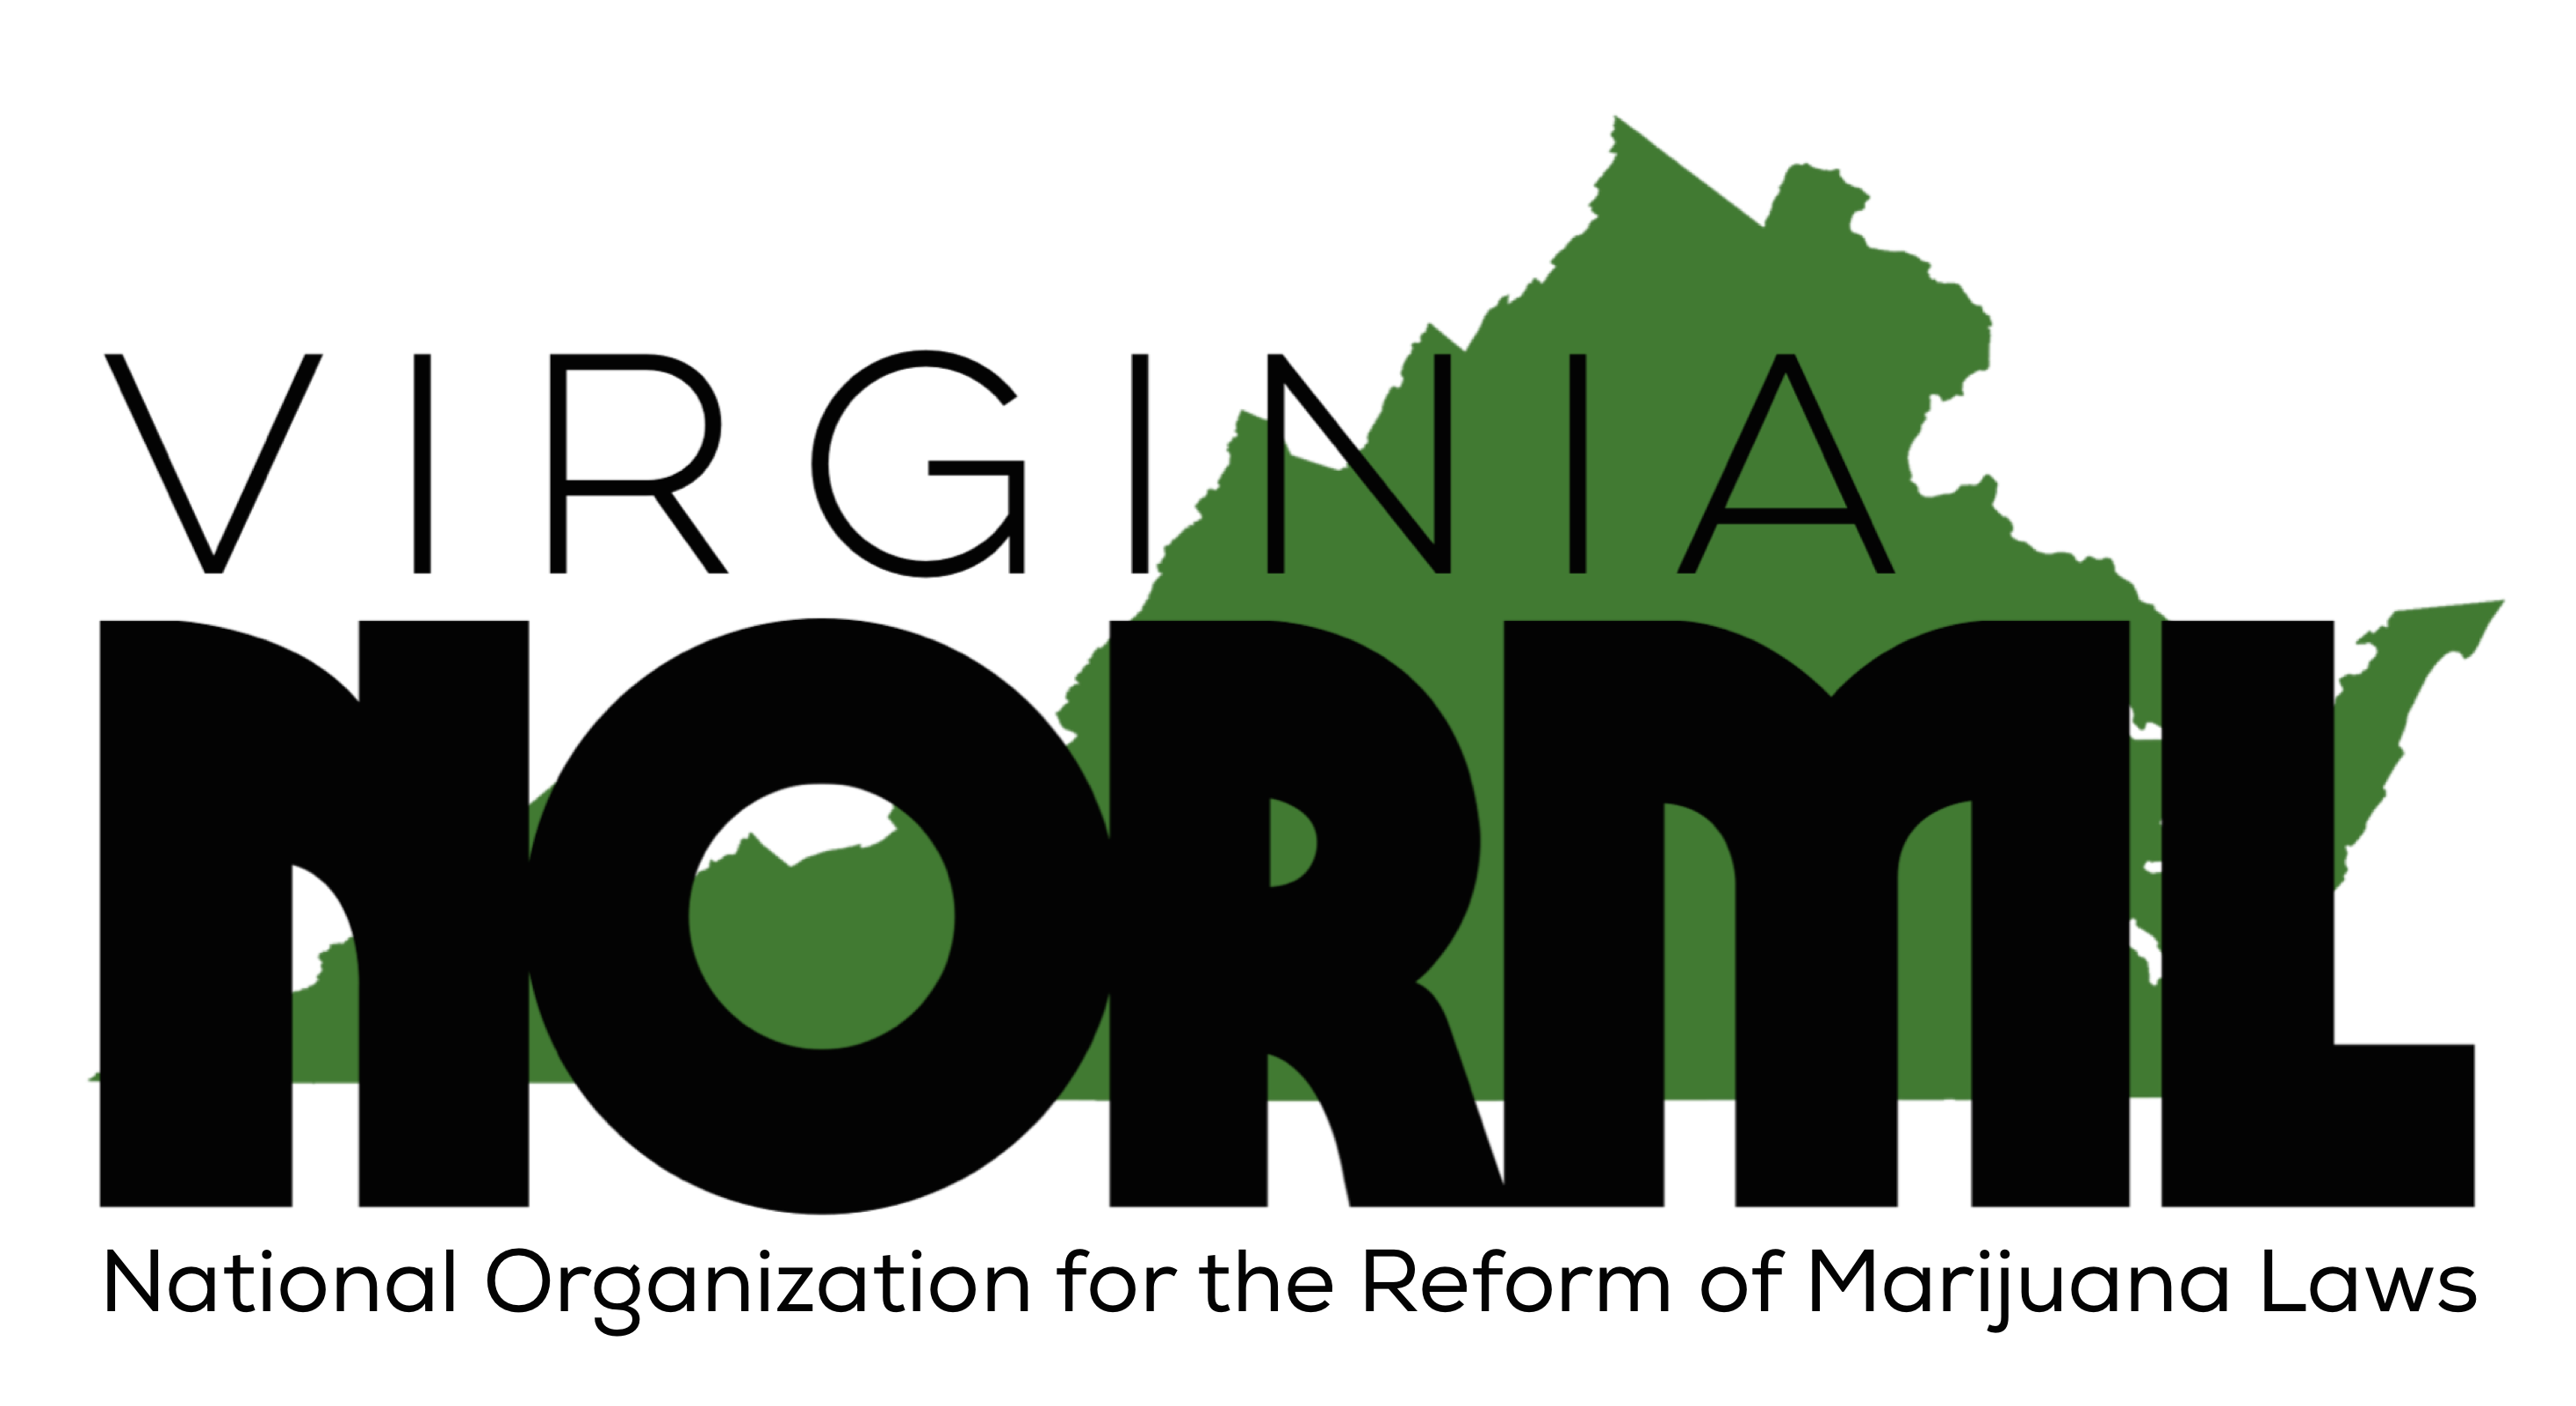 Virginia_NORML_logo.png